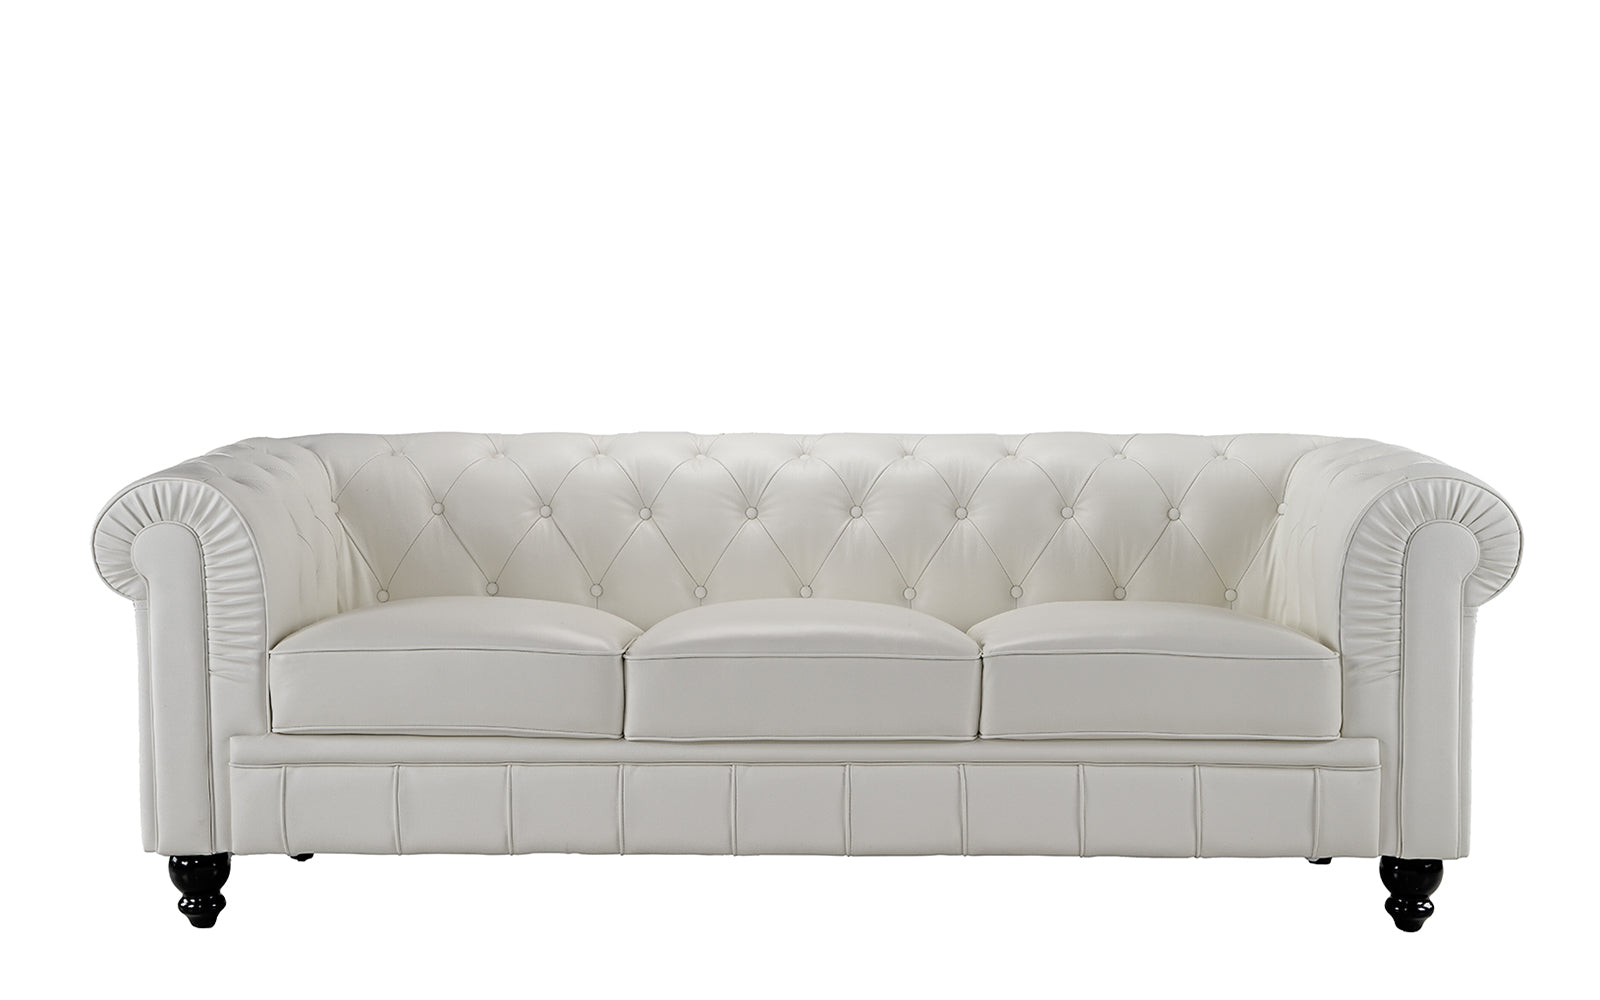 Jude Classic Victorian Leather Match Sofa | Sofamania.com